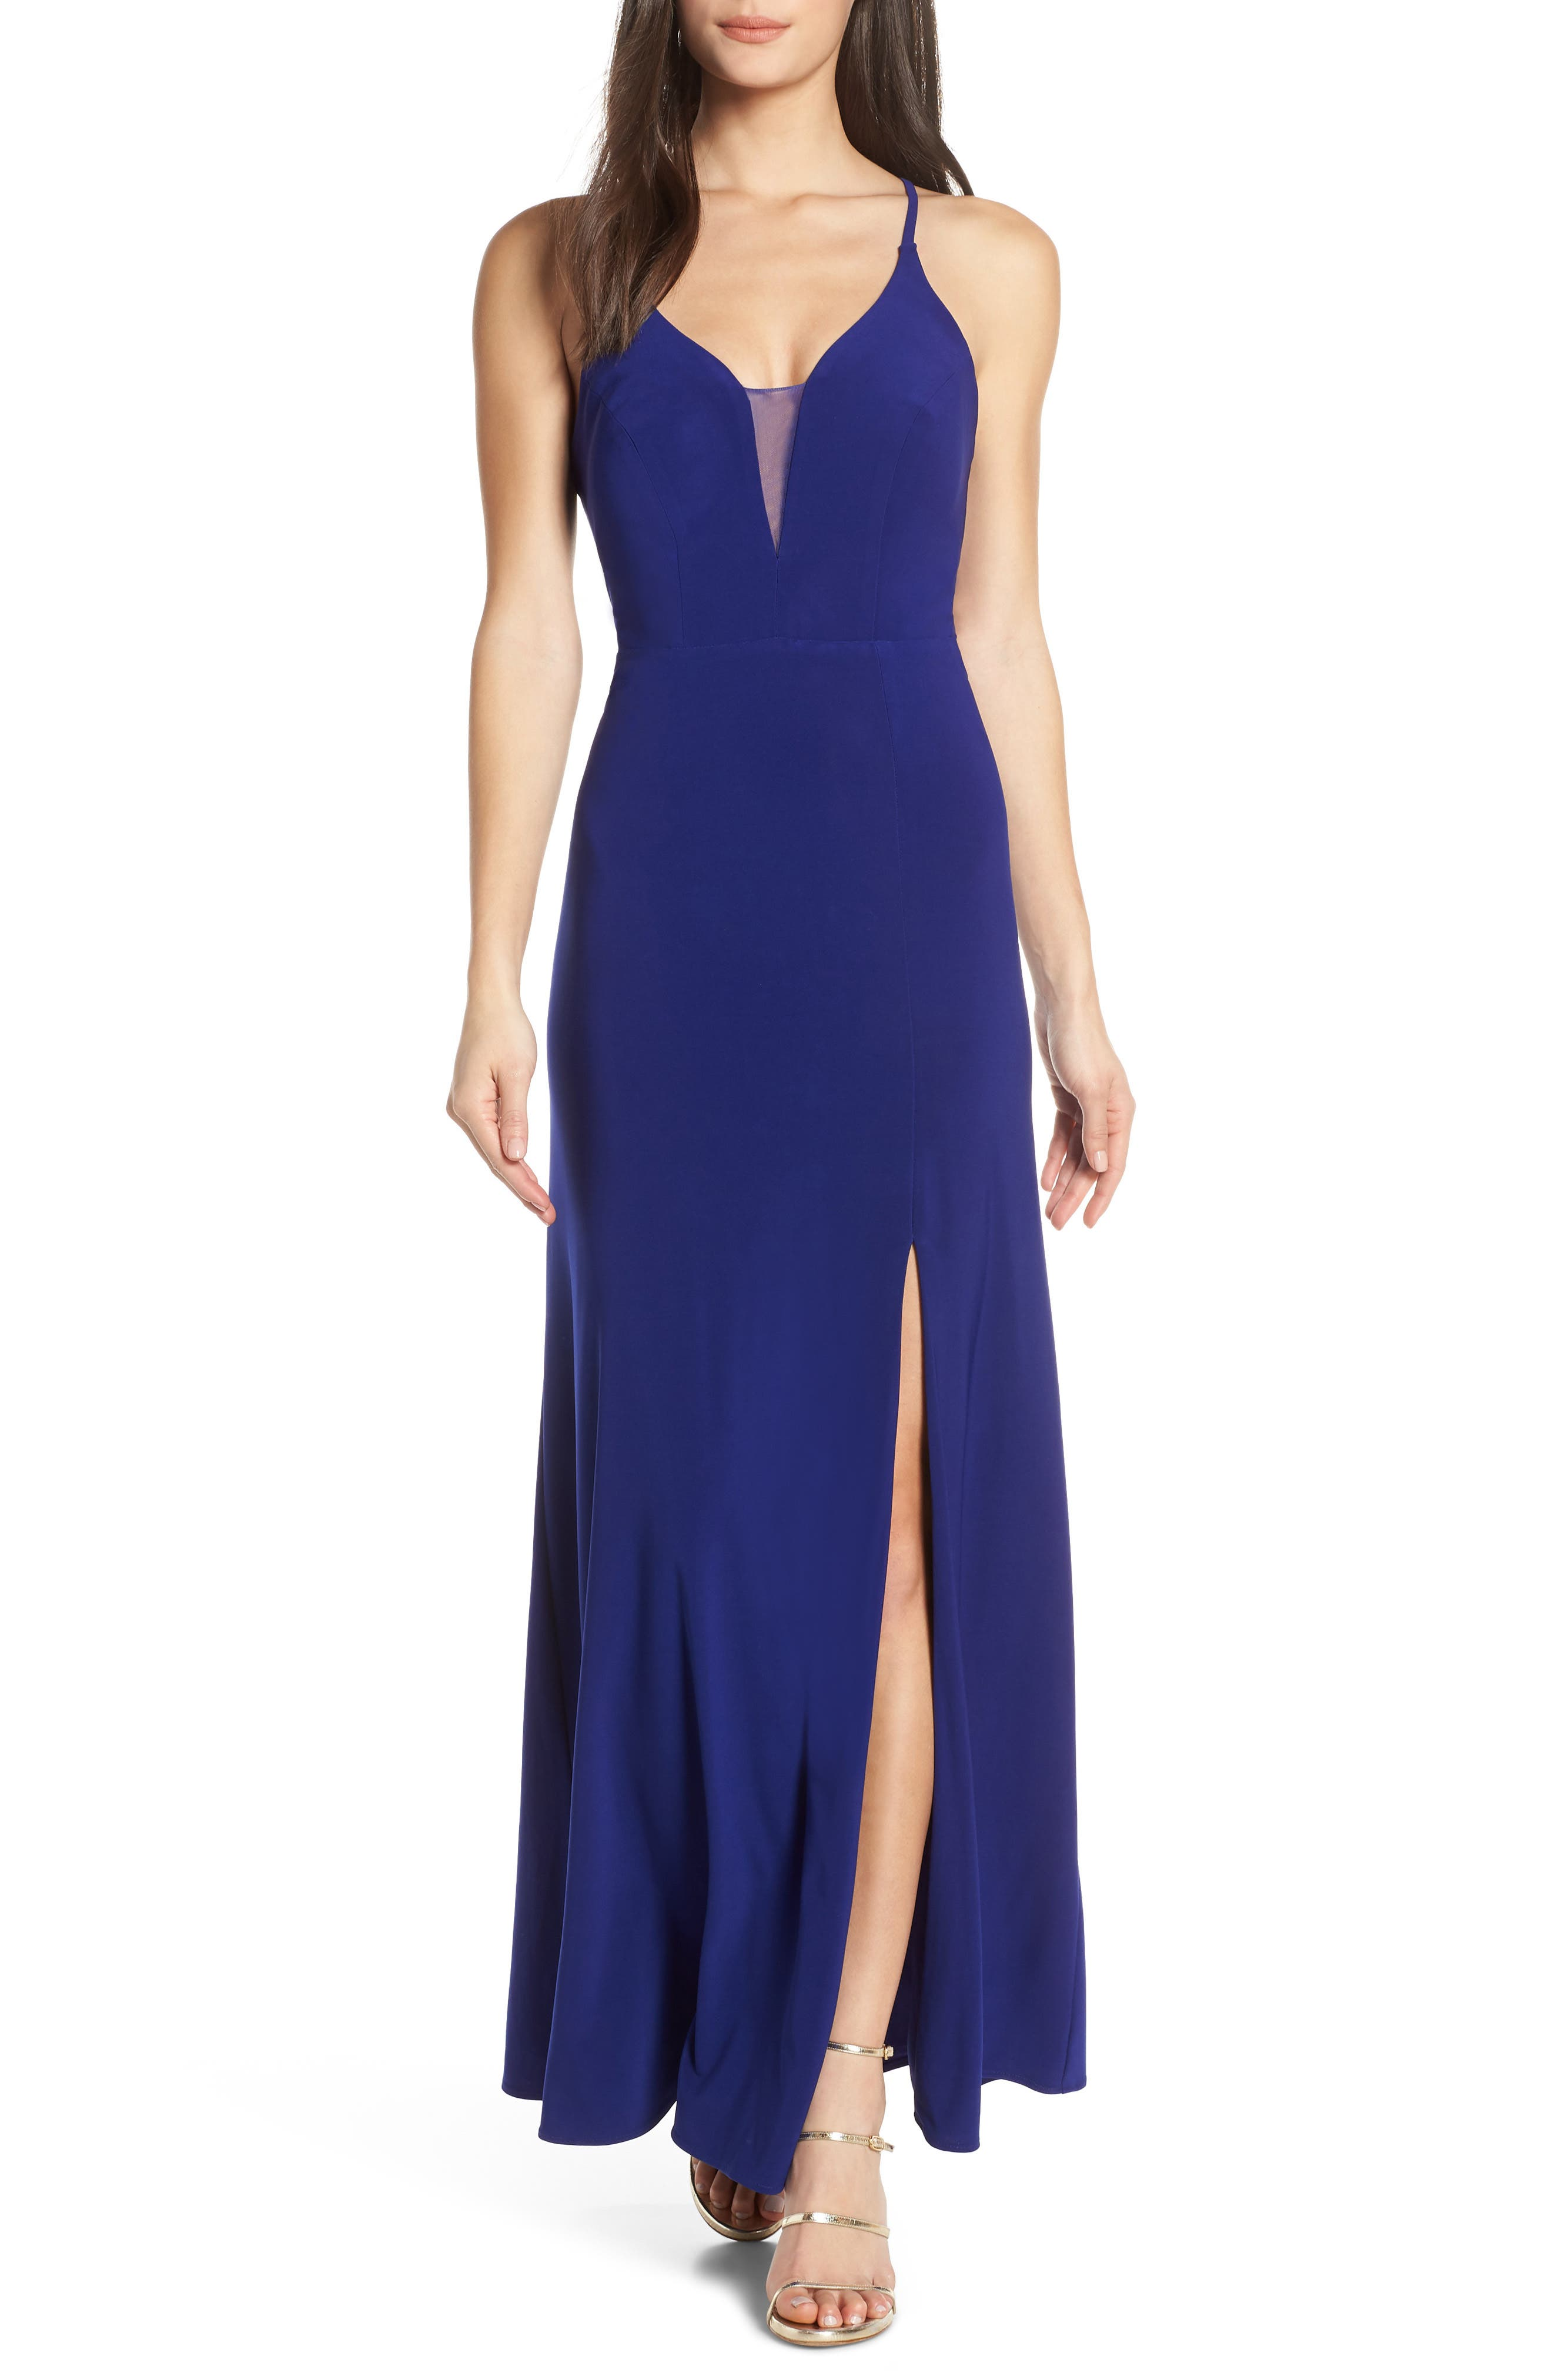 Morgan & Co. Lace-Up Back Evening Dress, Blue